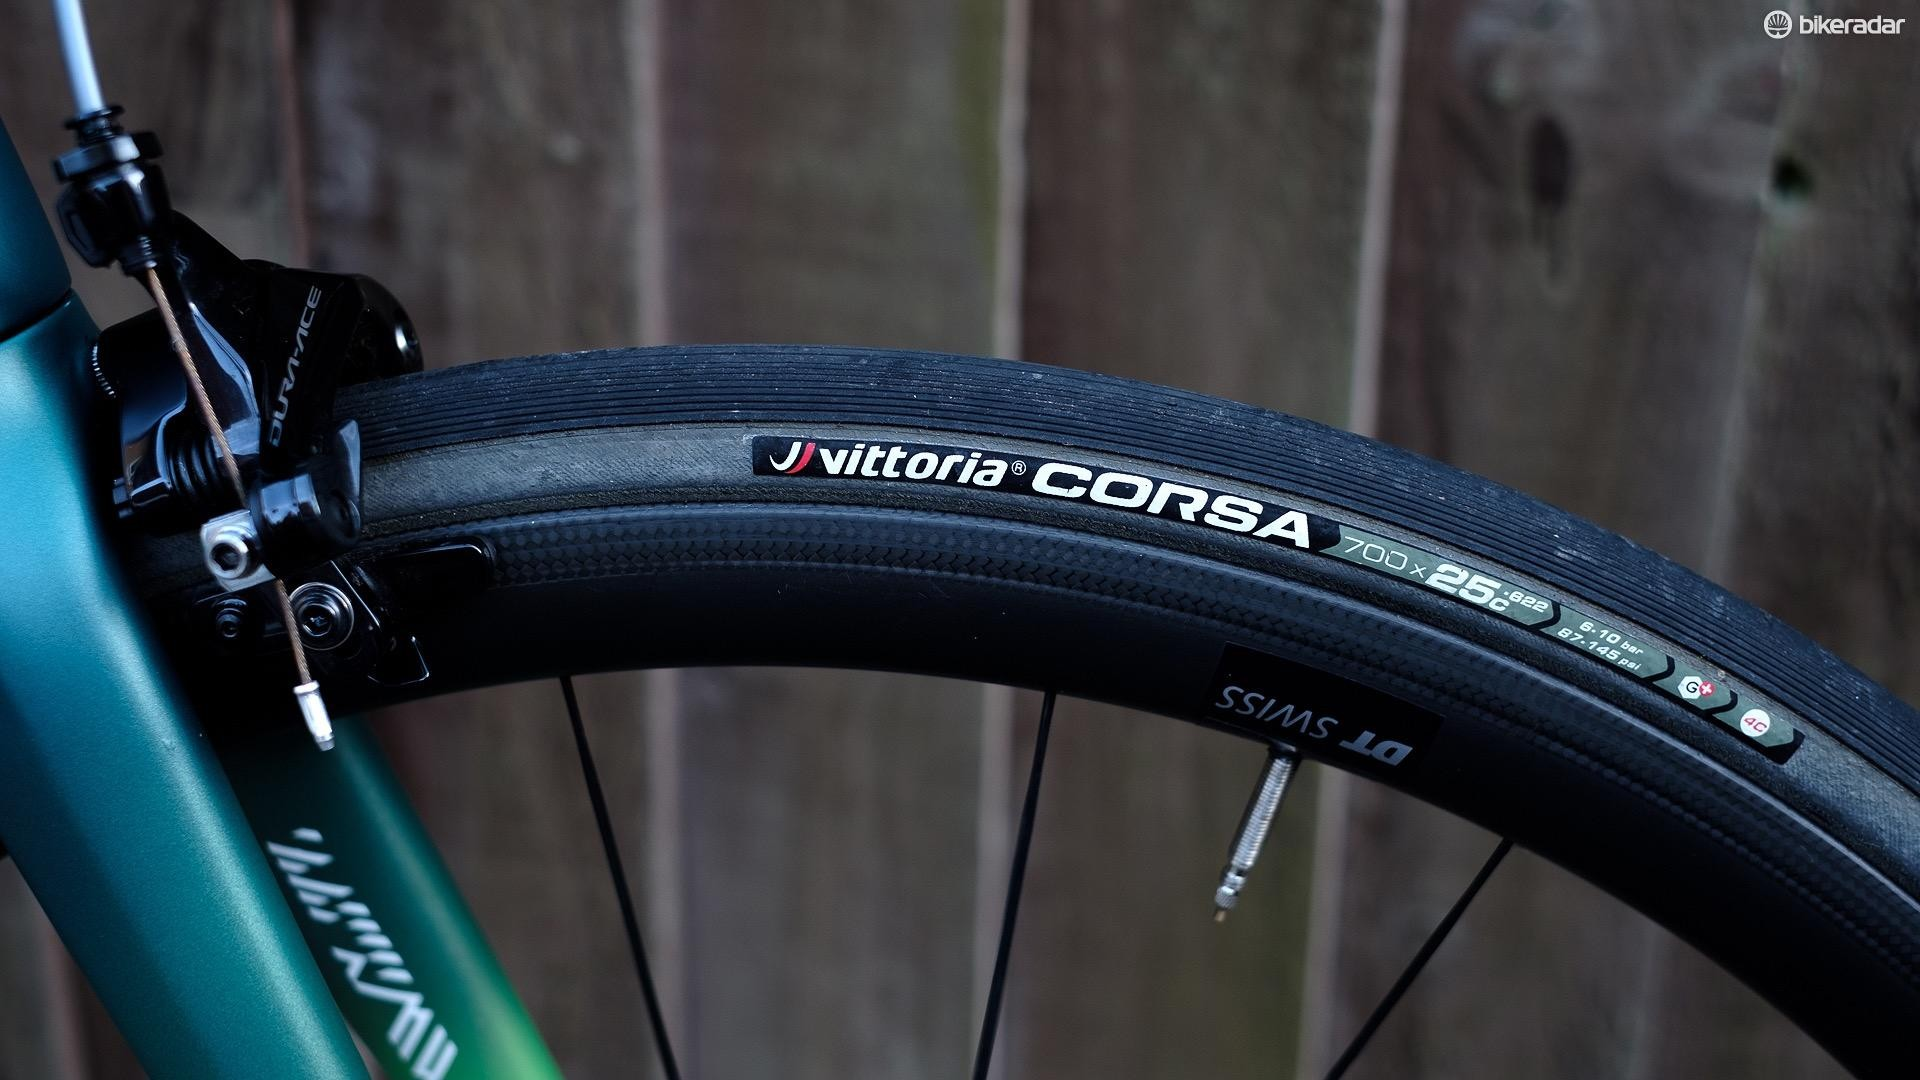 VIttoria Open Corsa G+ tyres offer plenty of grip and deliver a smooth, supple ride